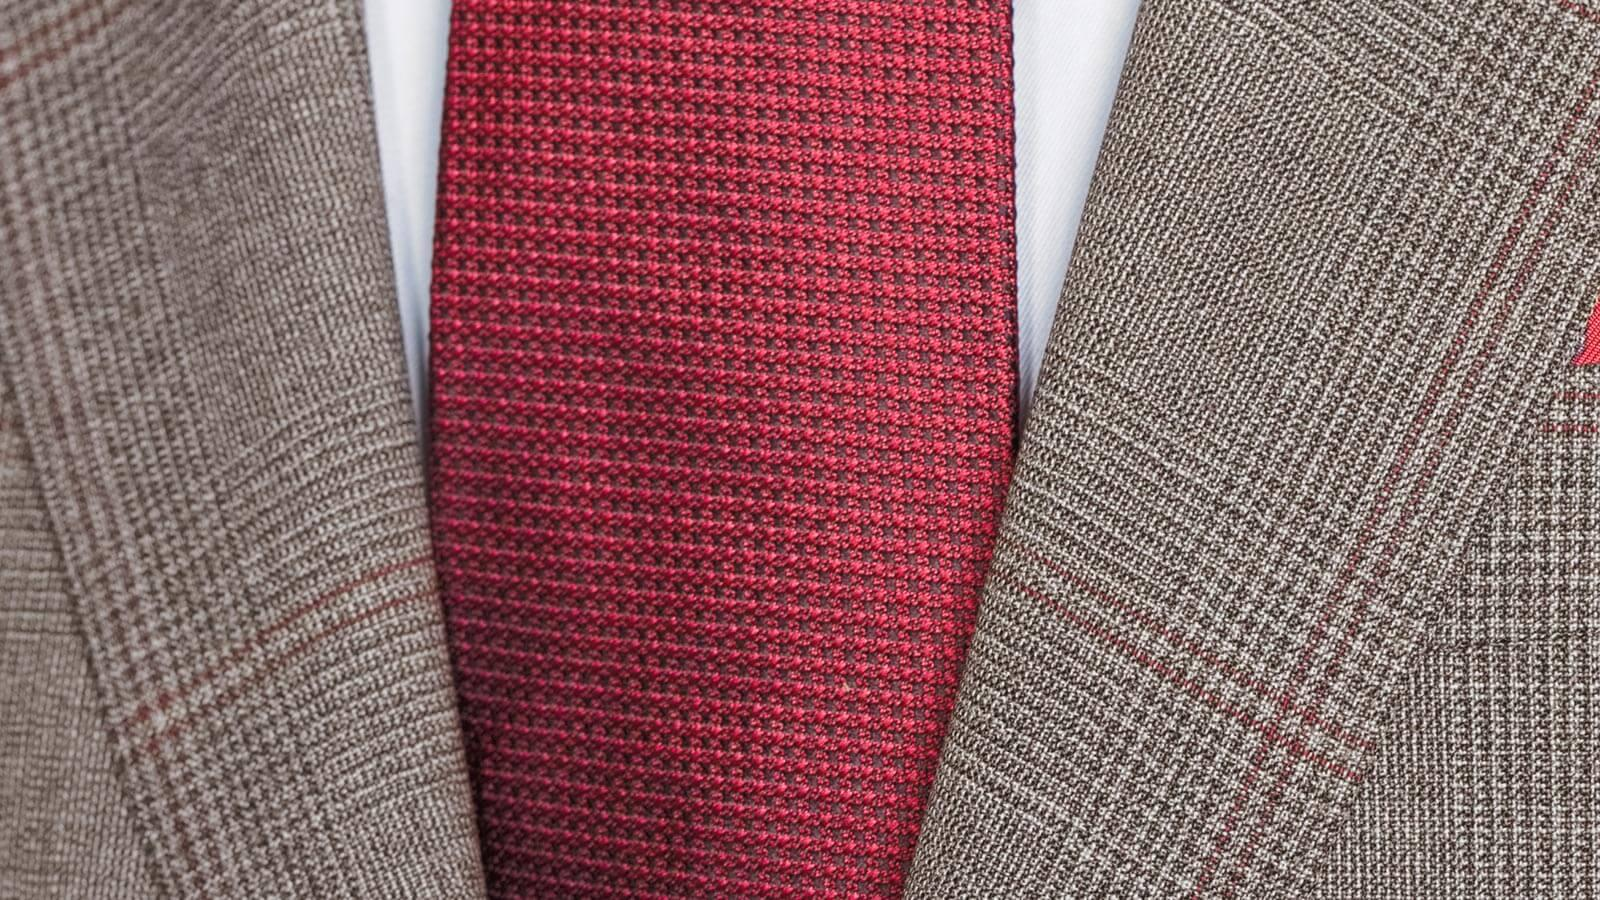 Tropical Rustic Light Brown Plaid with Red Overcheck Suit - slider image 1